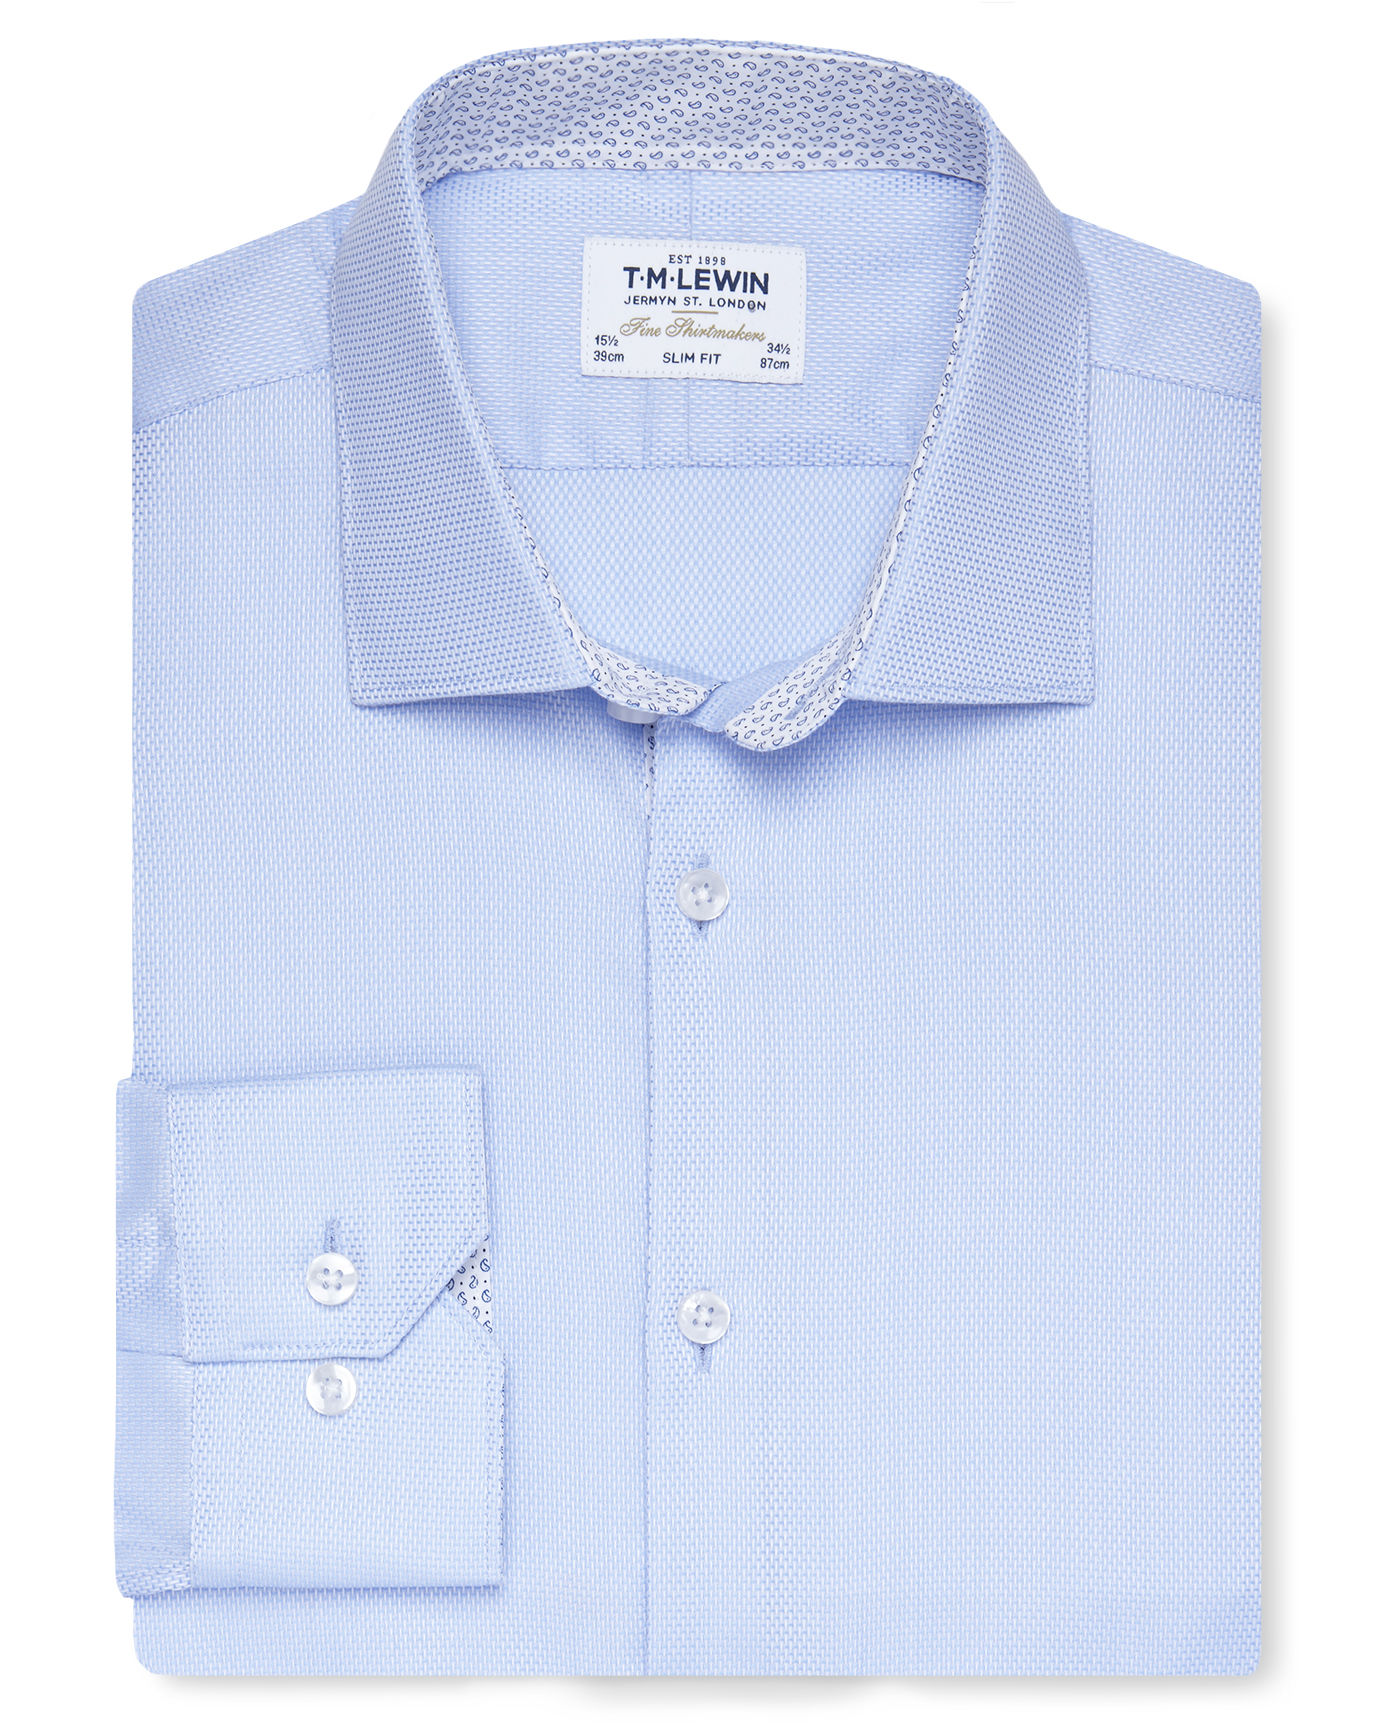 T.M.Lewin Premium Slim Fit Blue Textured Weave Shirt with Printed Trim - Button Cuff